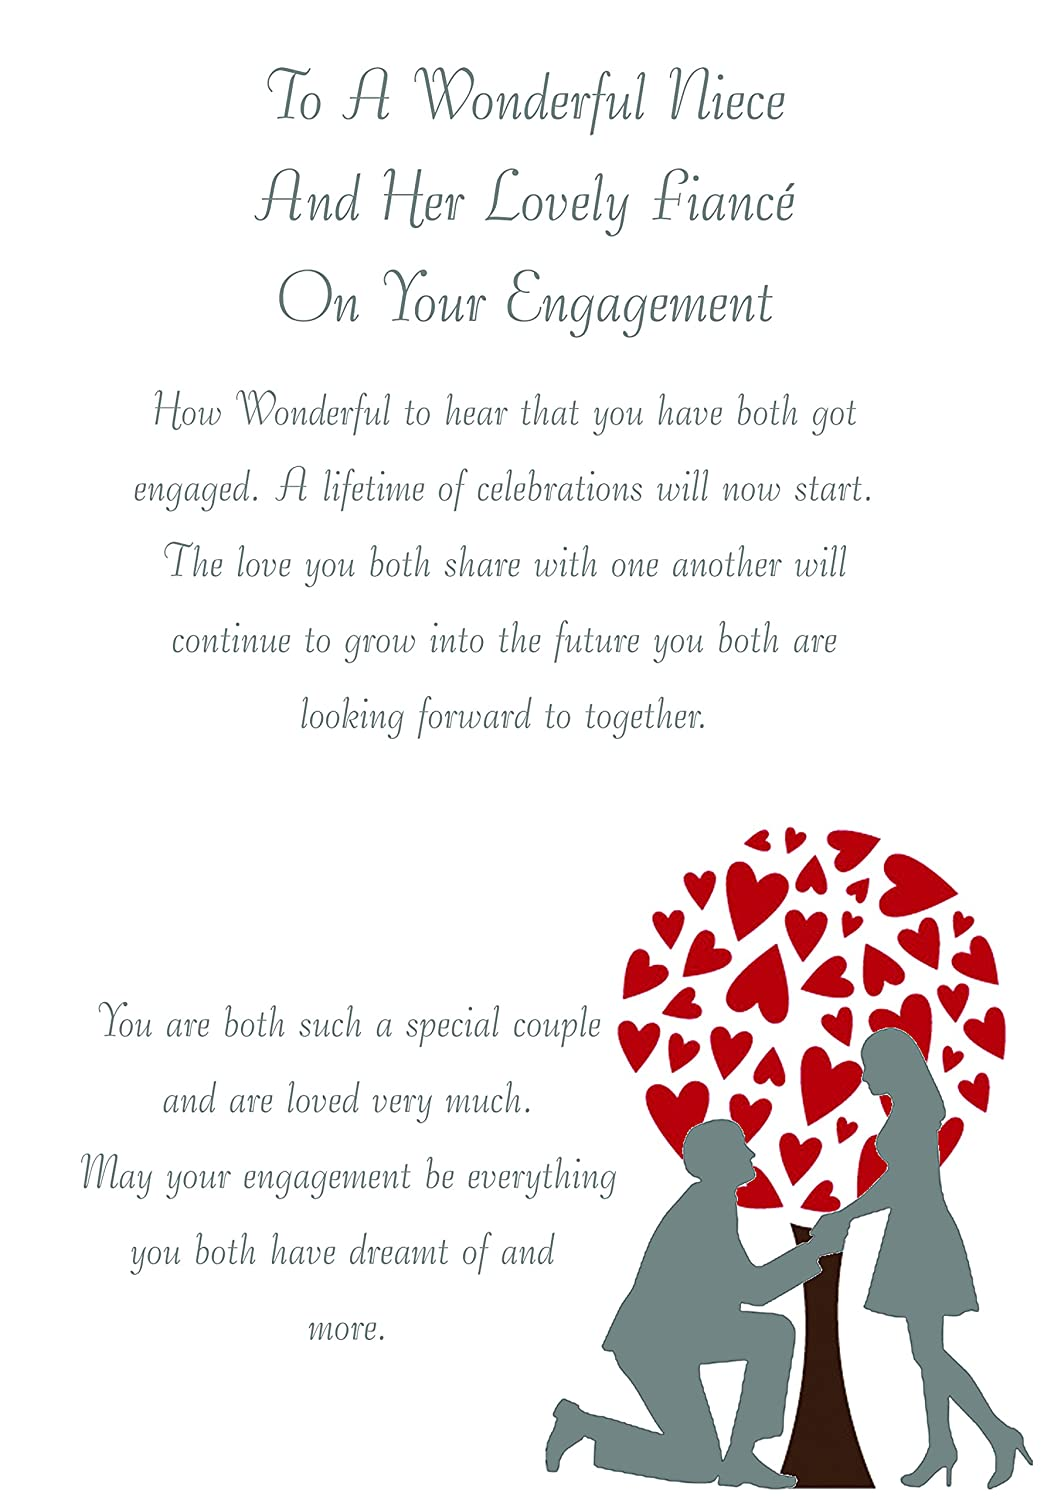 Niece /& Fiance Engagement Card Zee Bee/\'s Christmas gift ideas 2018